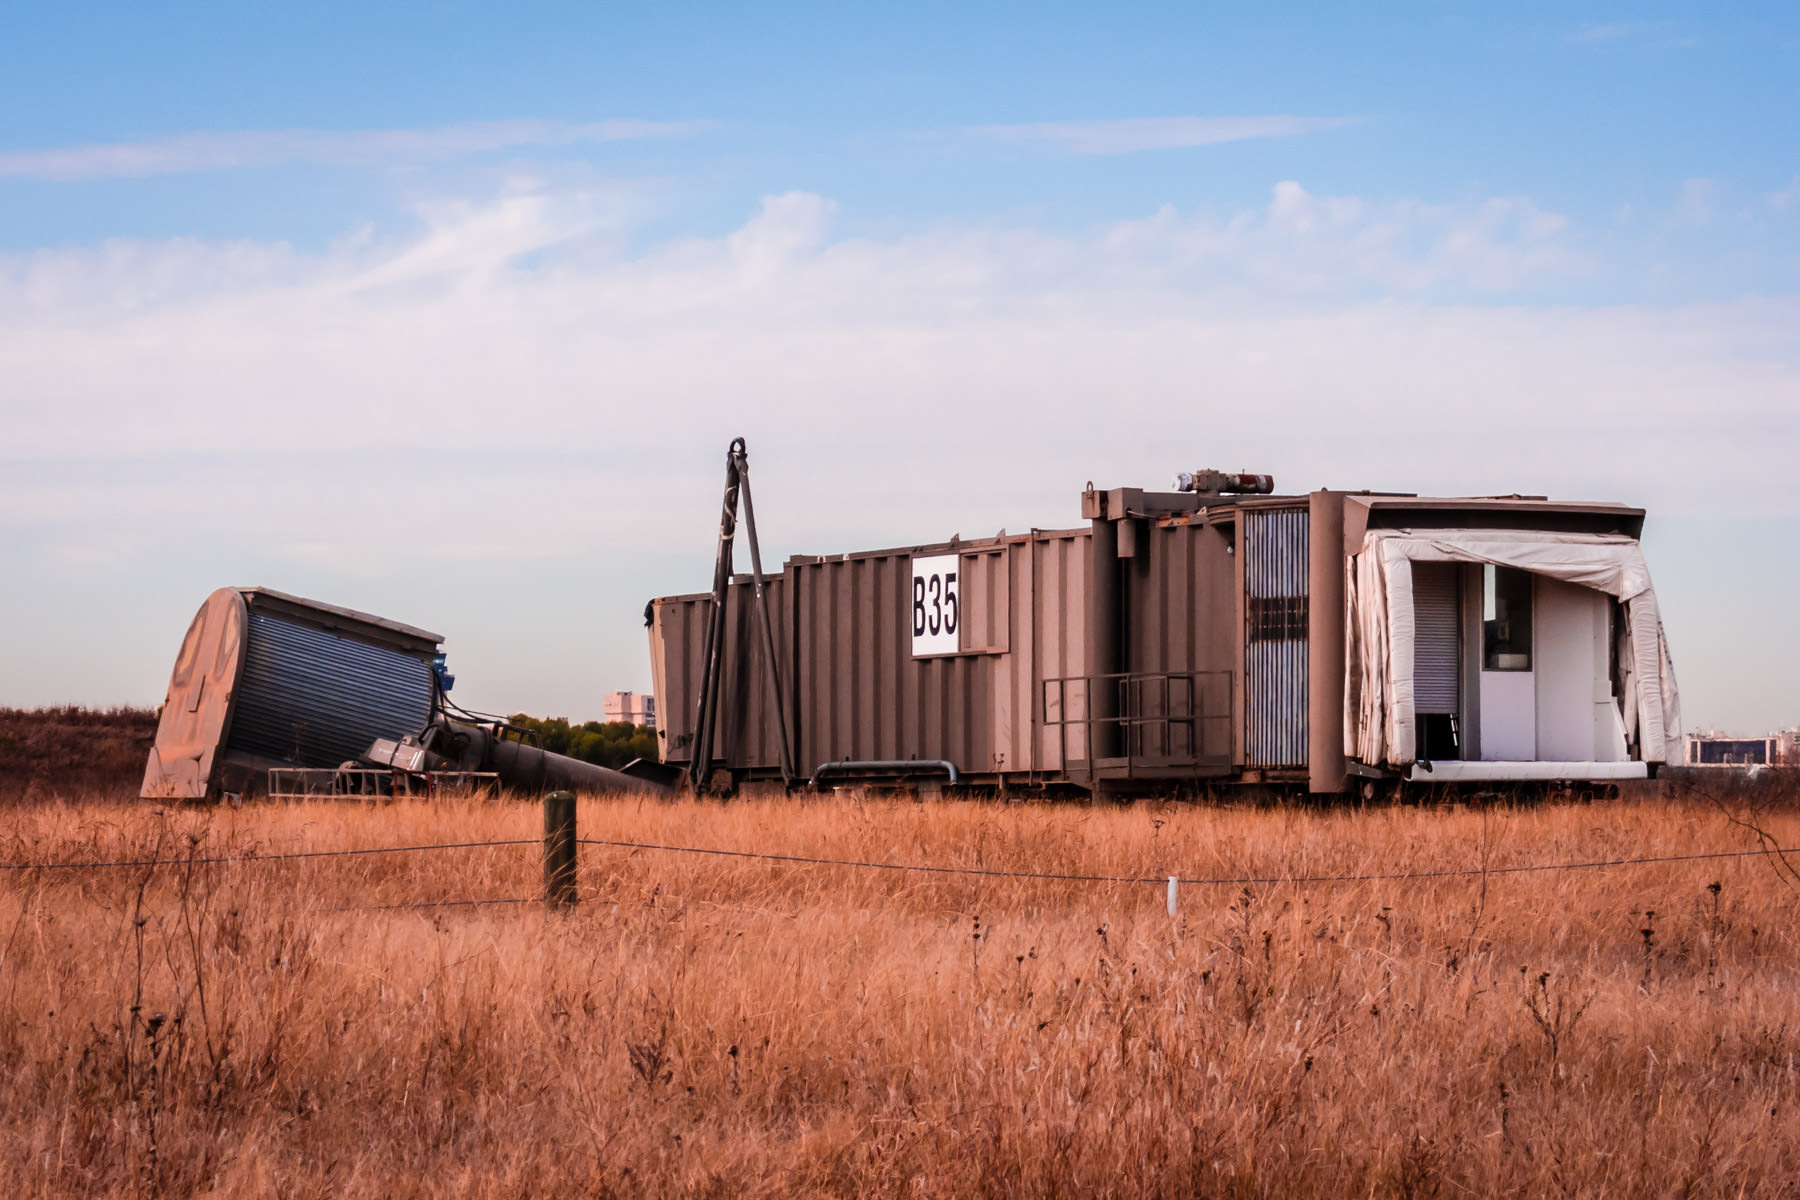 An abandoned jetway lies discarded on the periphery of DFW International Airport.